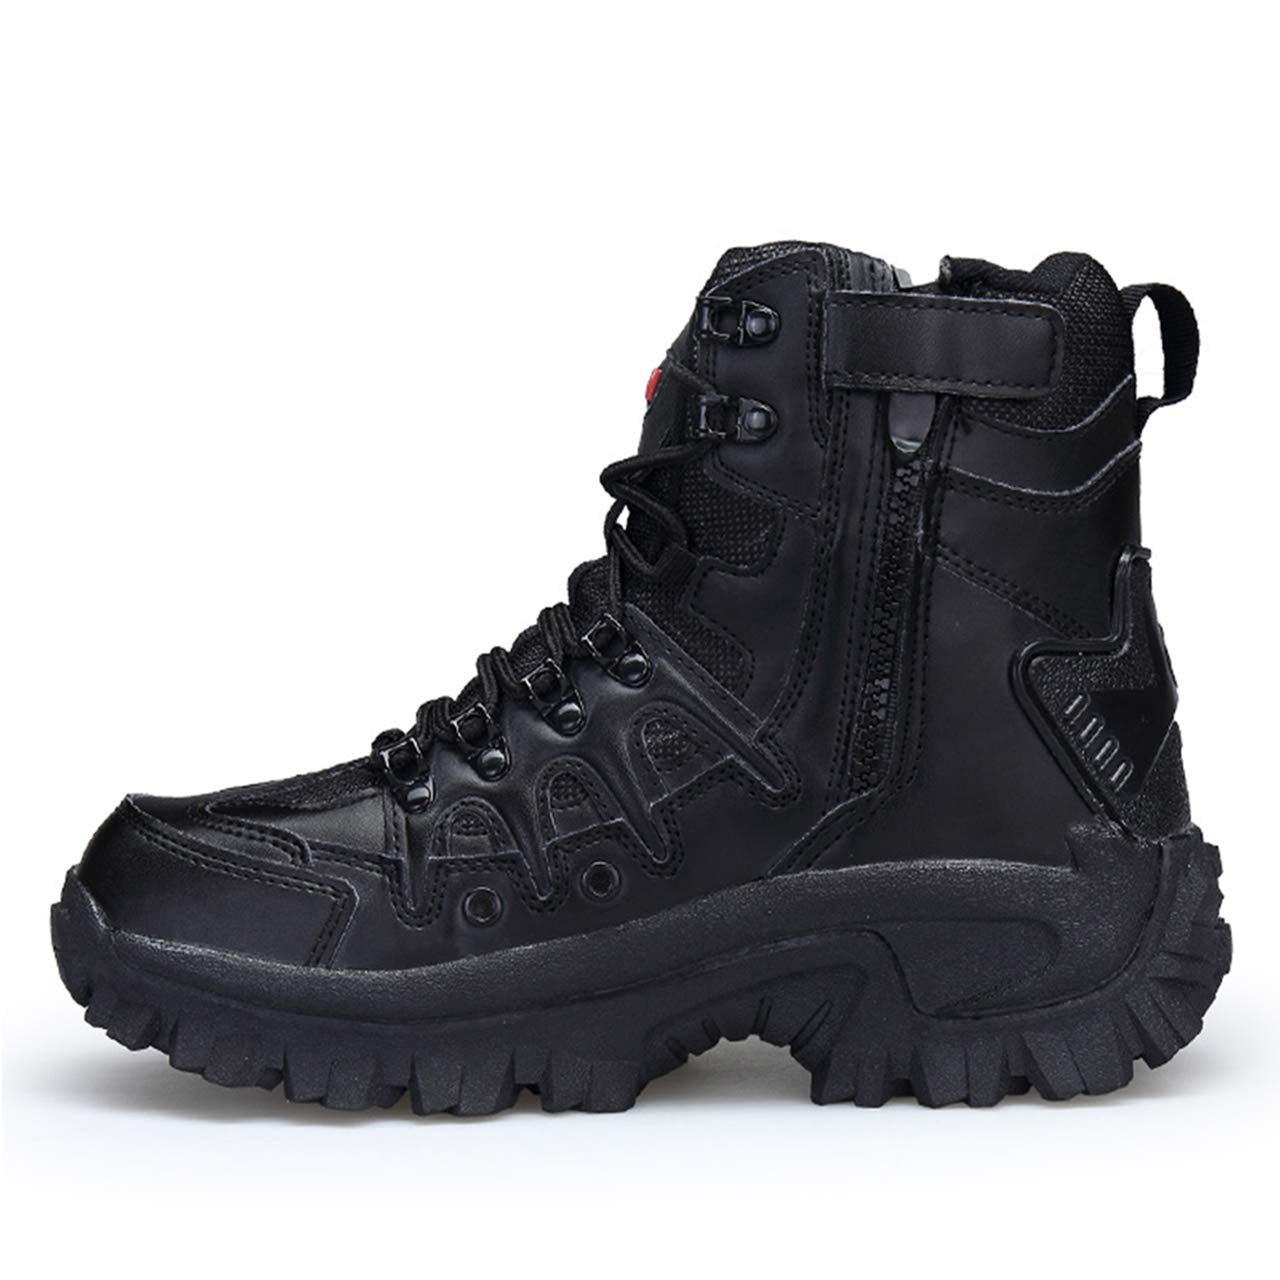 Mens Military Boots with Side Zipper High Cut Tactical Boots Savage Boots Black Desert Green Color Shoes Combat Boots Outdoor Work Boots Waterproof Anti-slip Thick Soles Breathable Abrasion Resistant